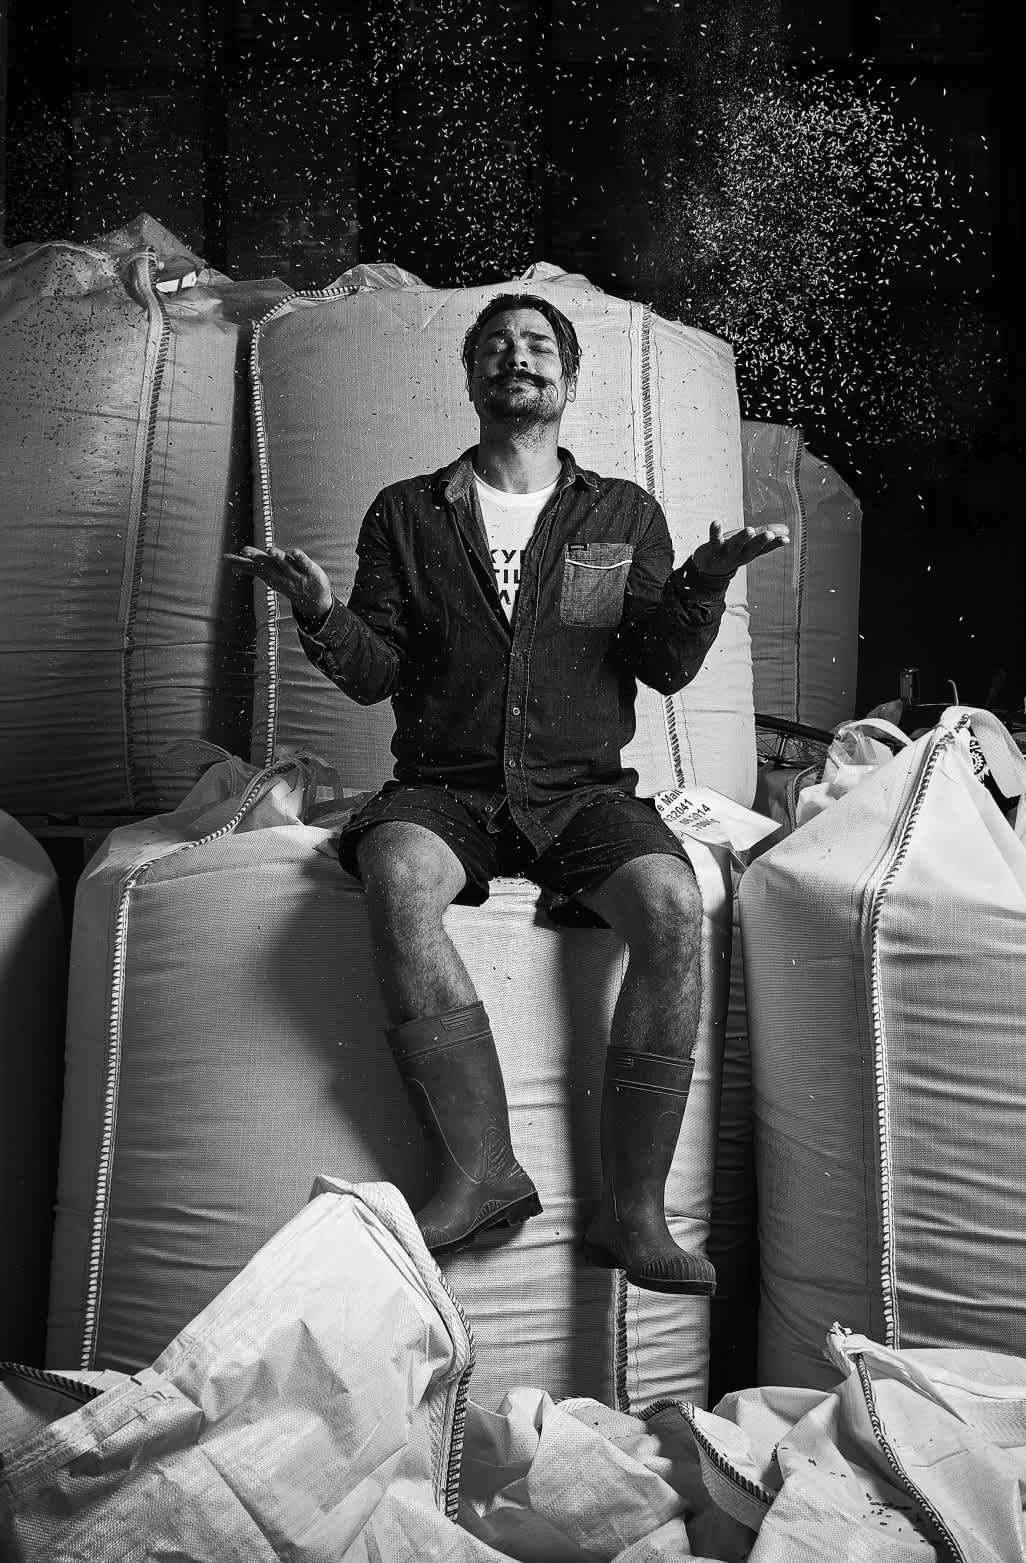 Black and white image: head distiller Kalle Valkonen sit atop bags of rye, tossing kernels into the air.